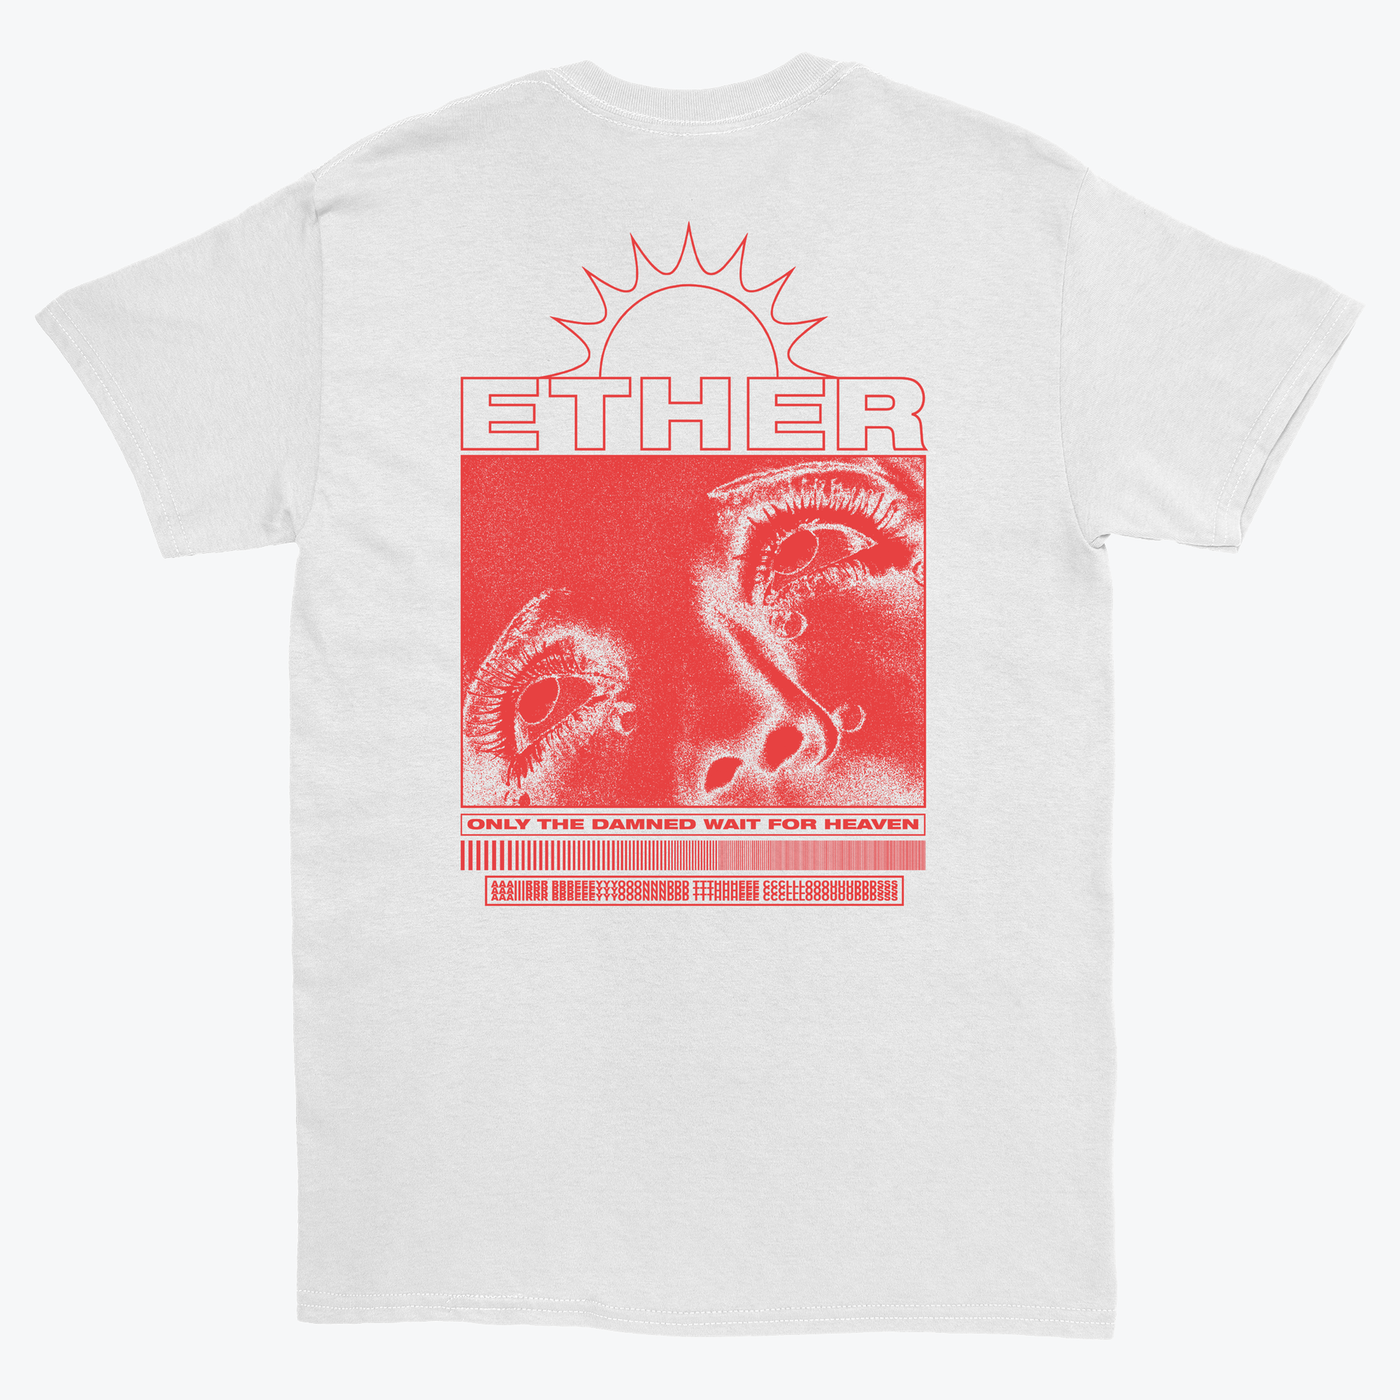 Wellwishers88 'WW88/ETHER' T-shirt